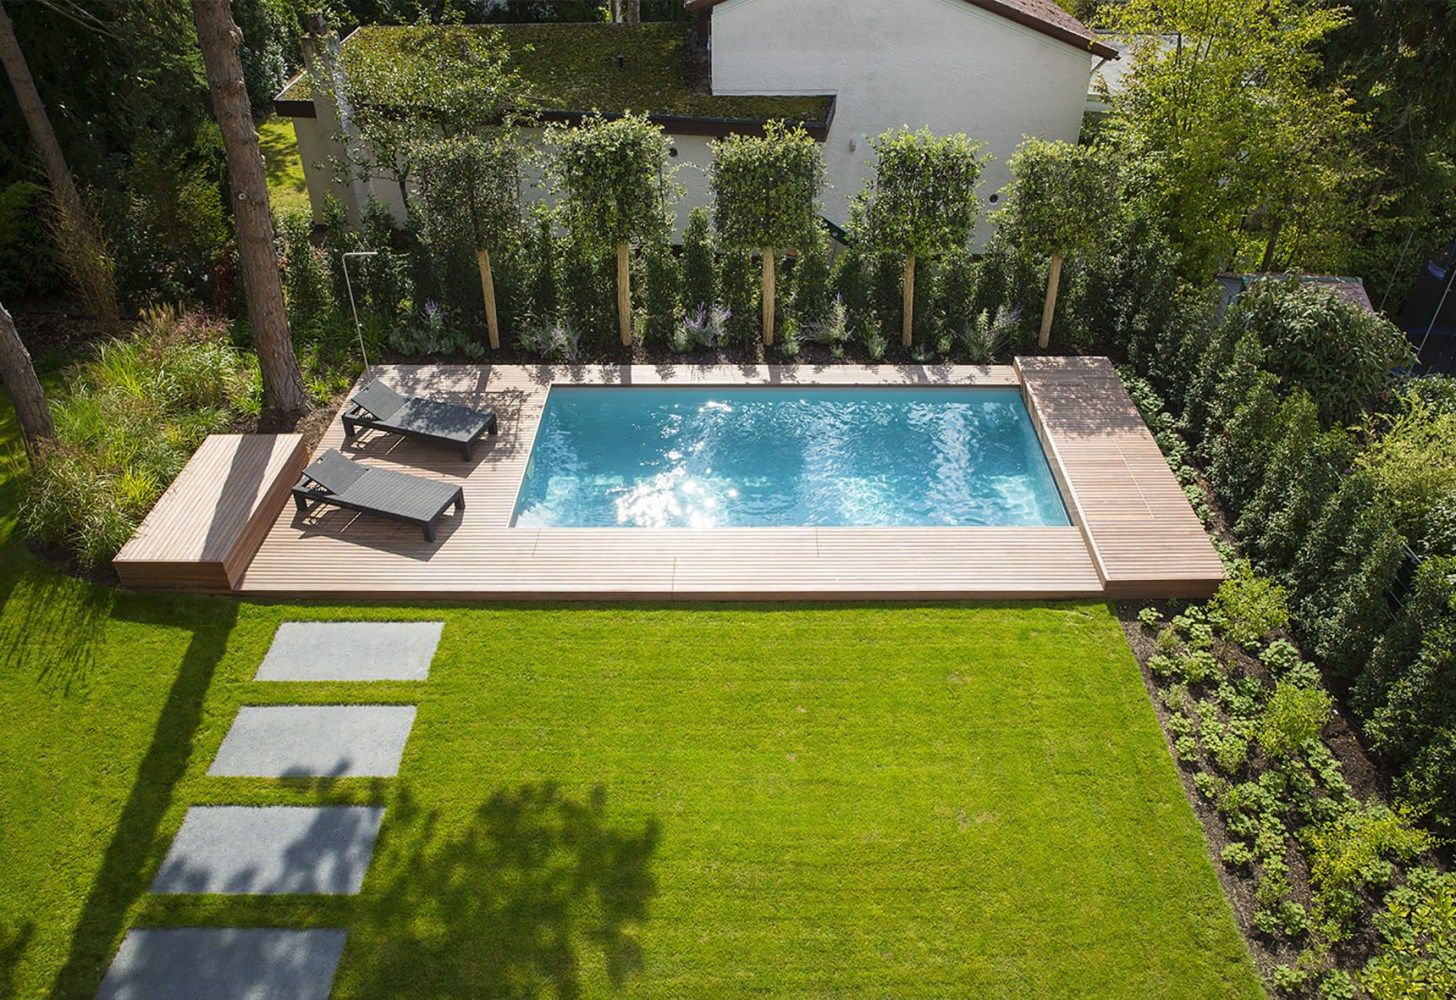 Pool in kleinem garten garten pinterest garten pool for Gartenideen pool